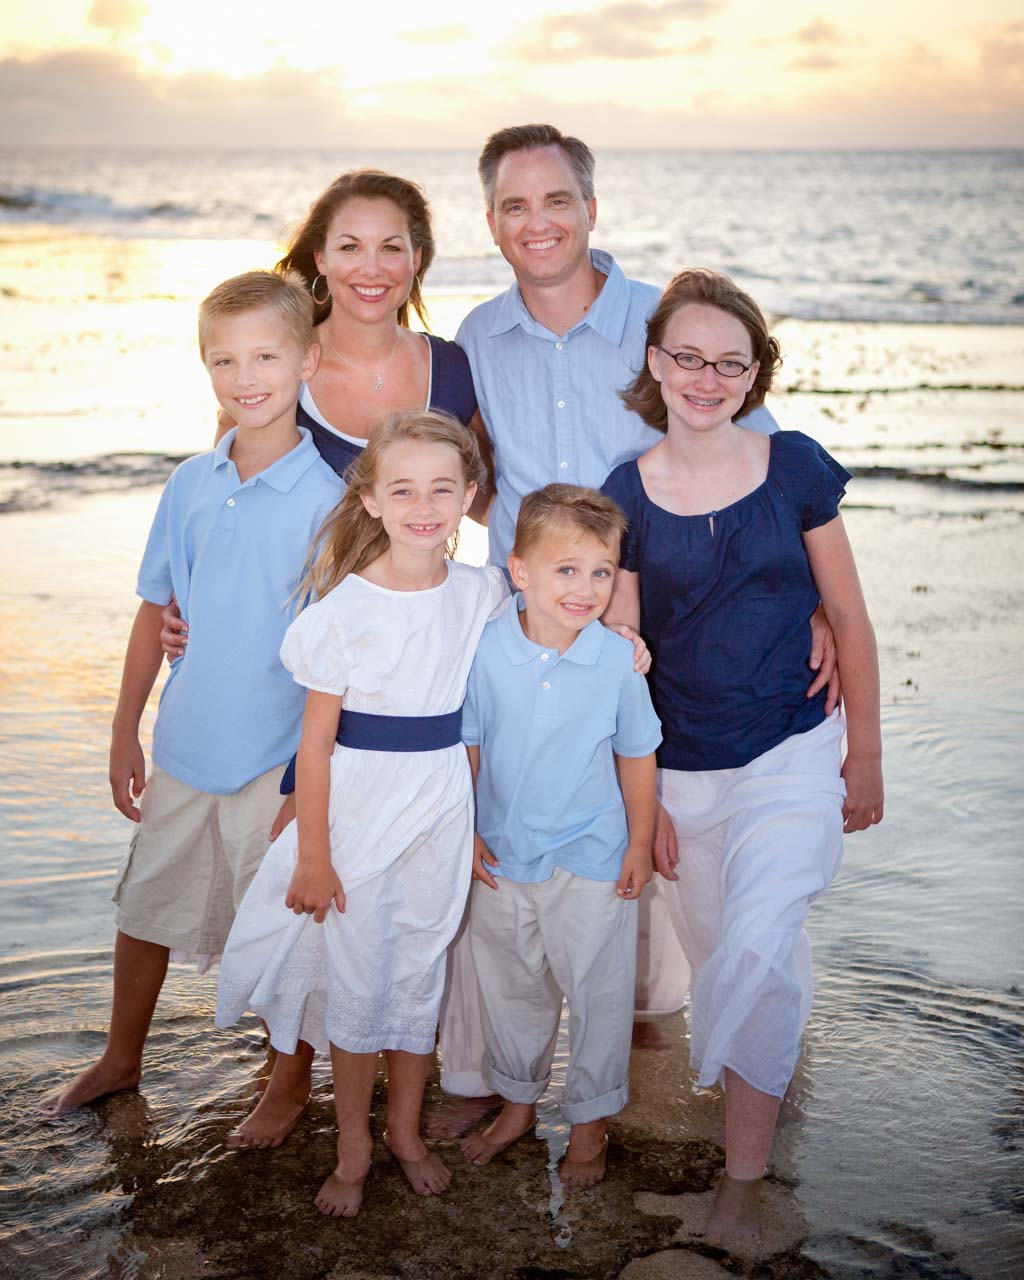 Family Picture Ideas For Wedding: Family Picture Prices– Hawaii Family Portrait Photography